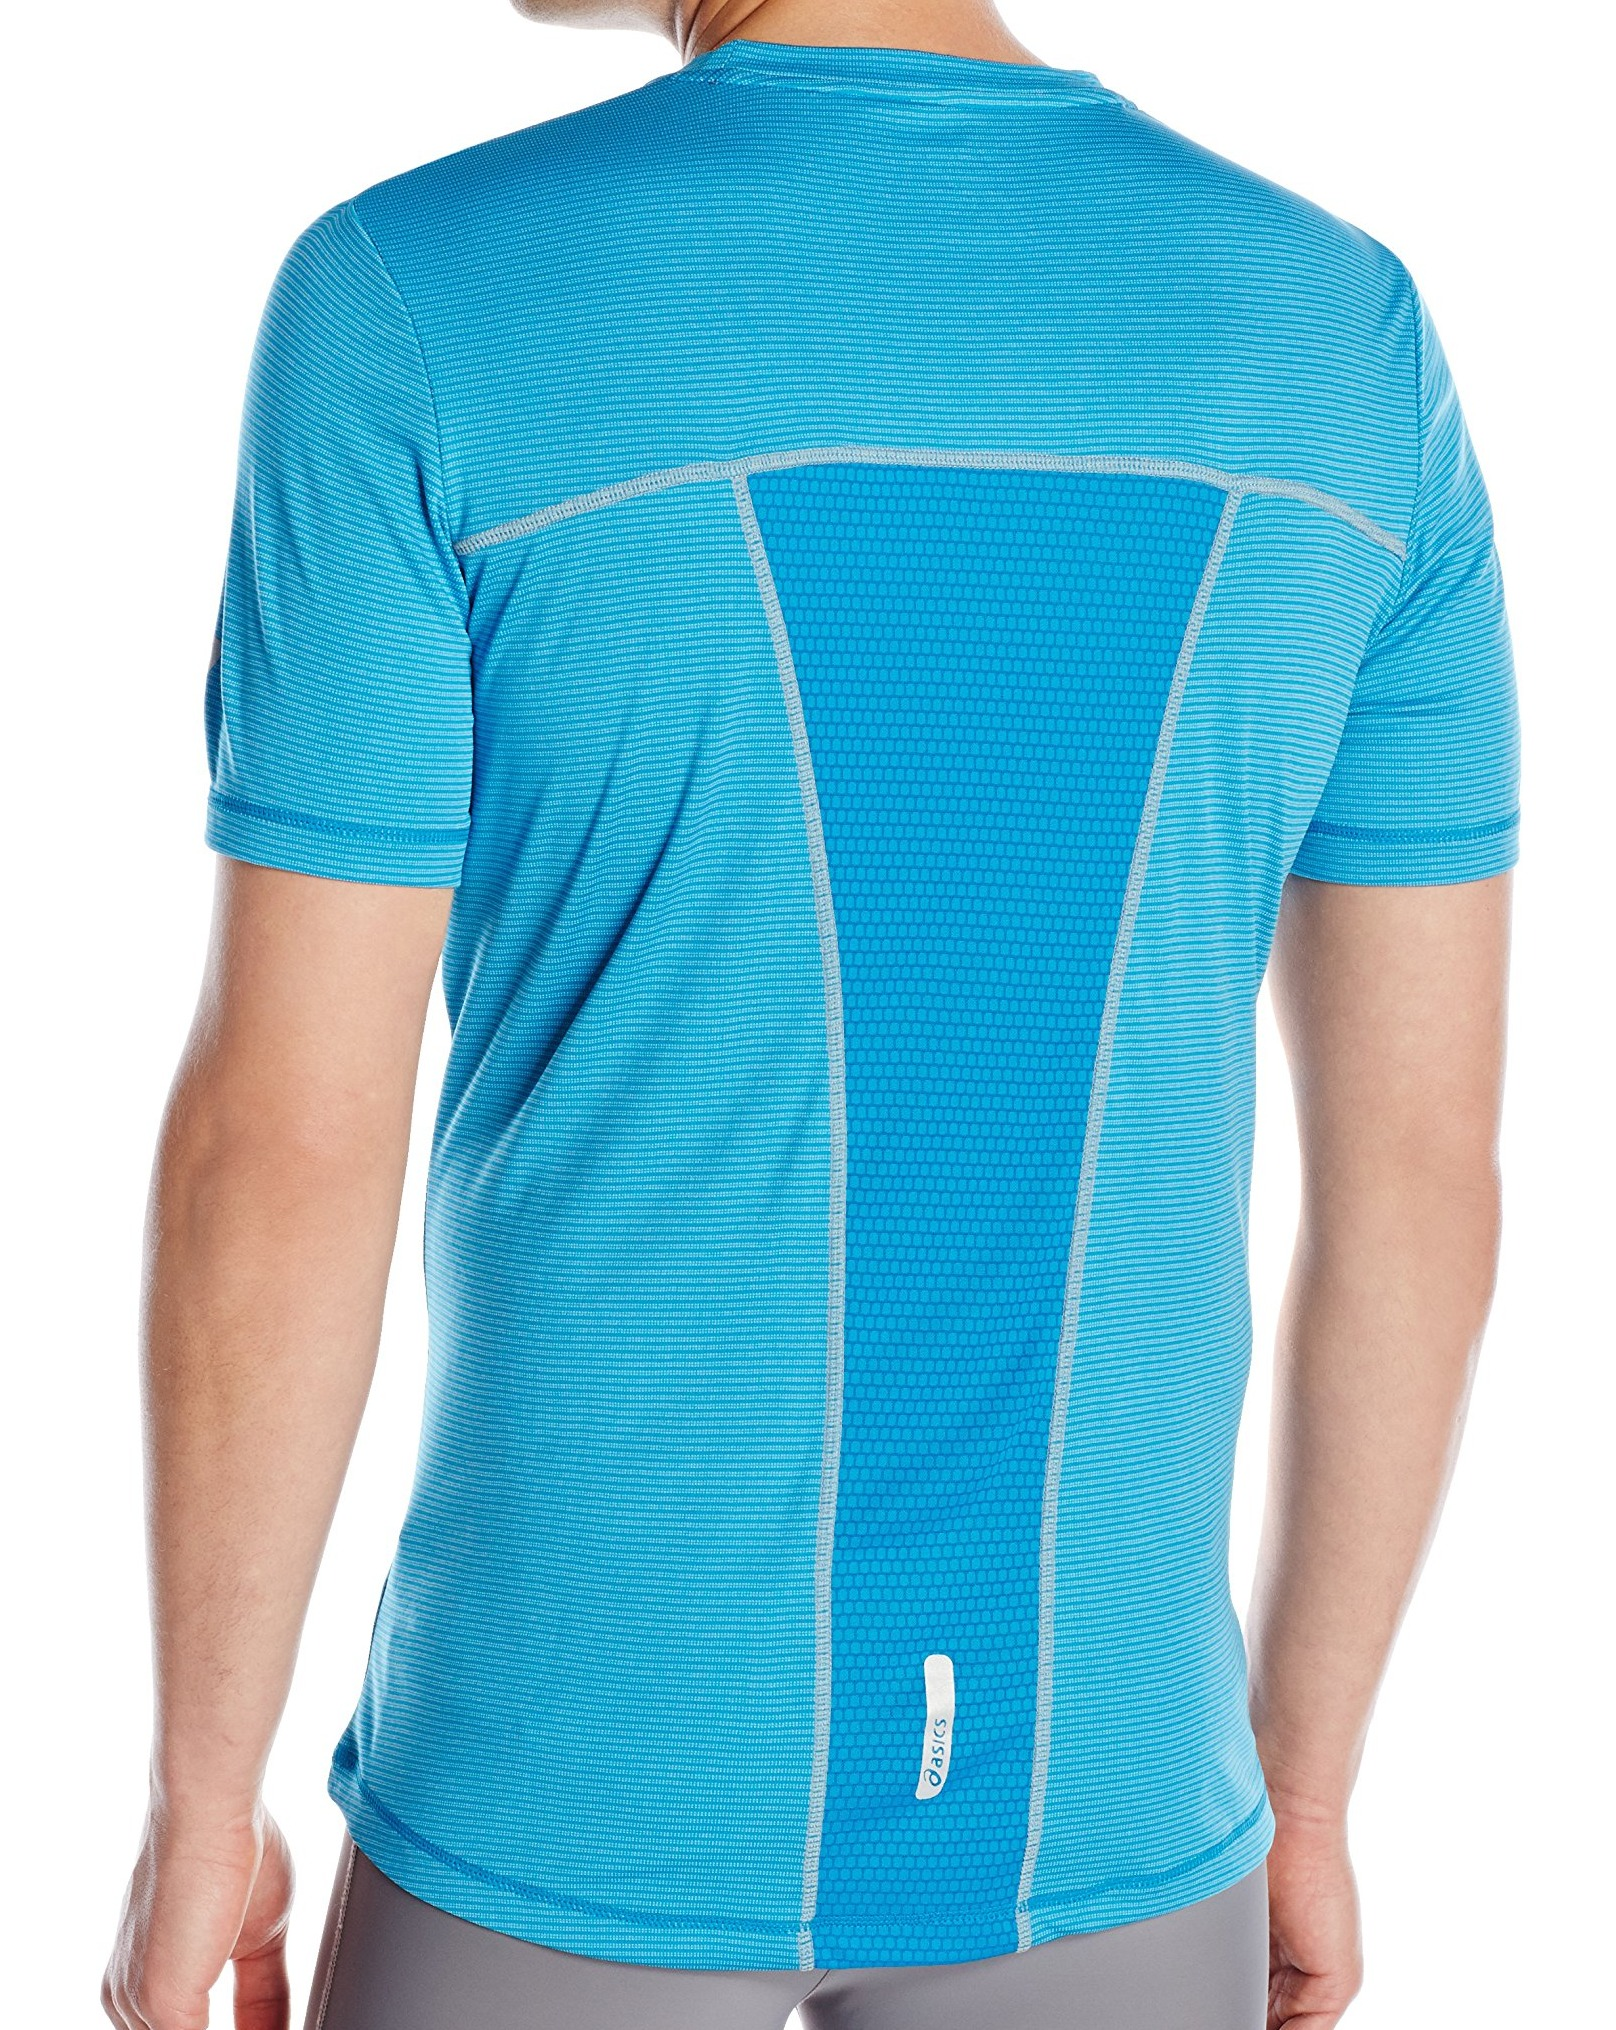 Asics-NEW-Striped-Mens-Shosha-Performance-Short-Sleeve-Tee-T-Shirt-40 thumbnail 3